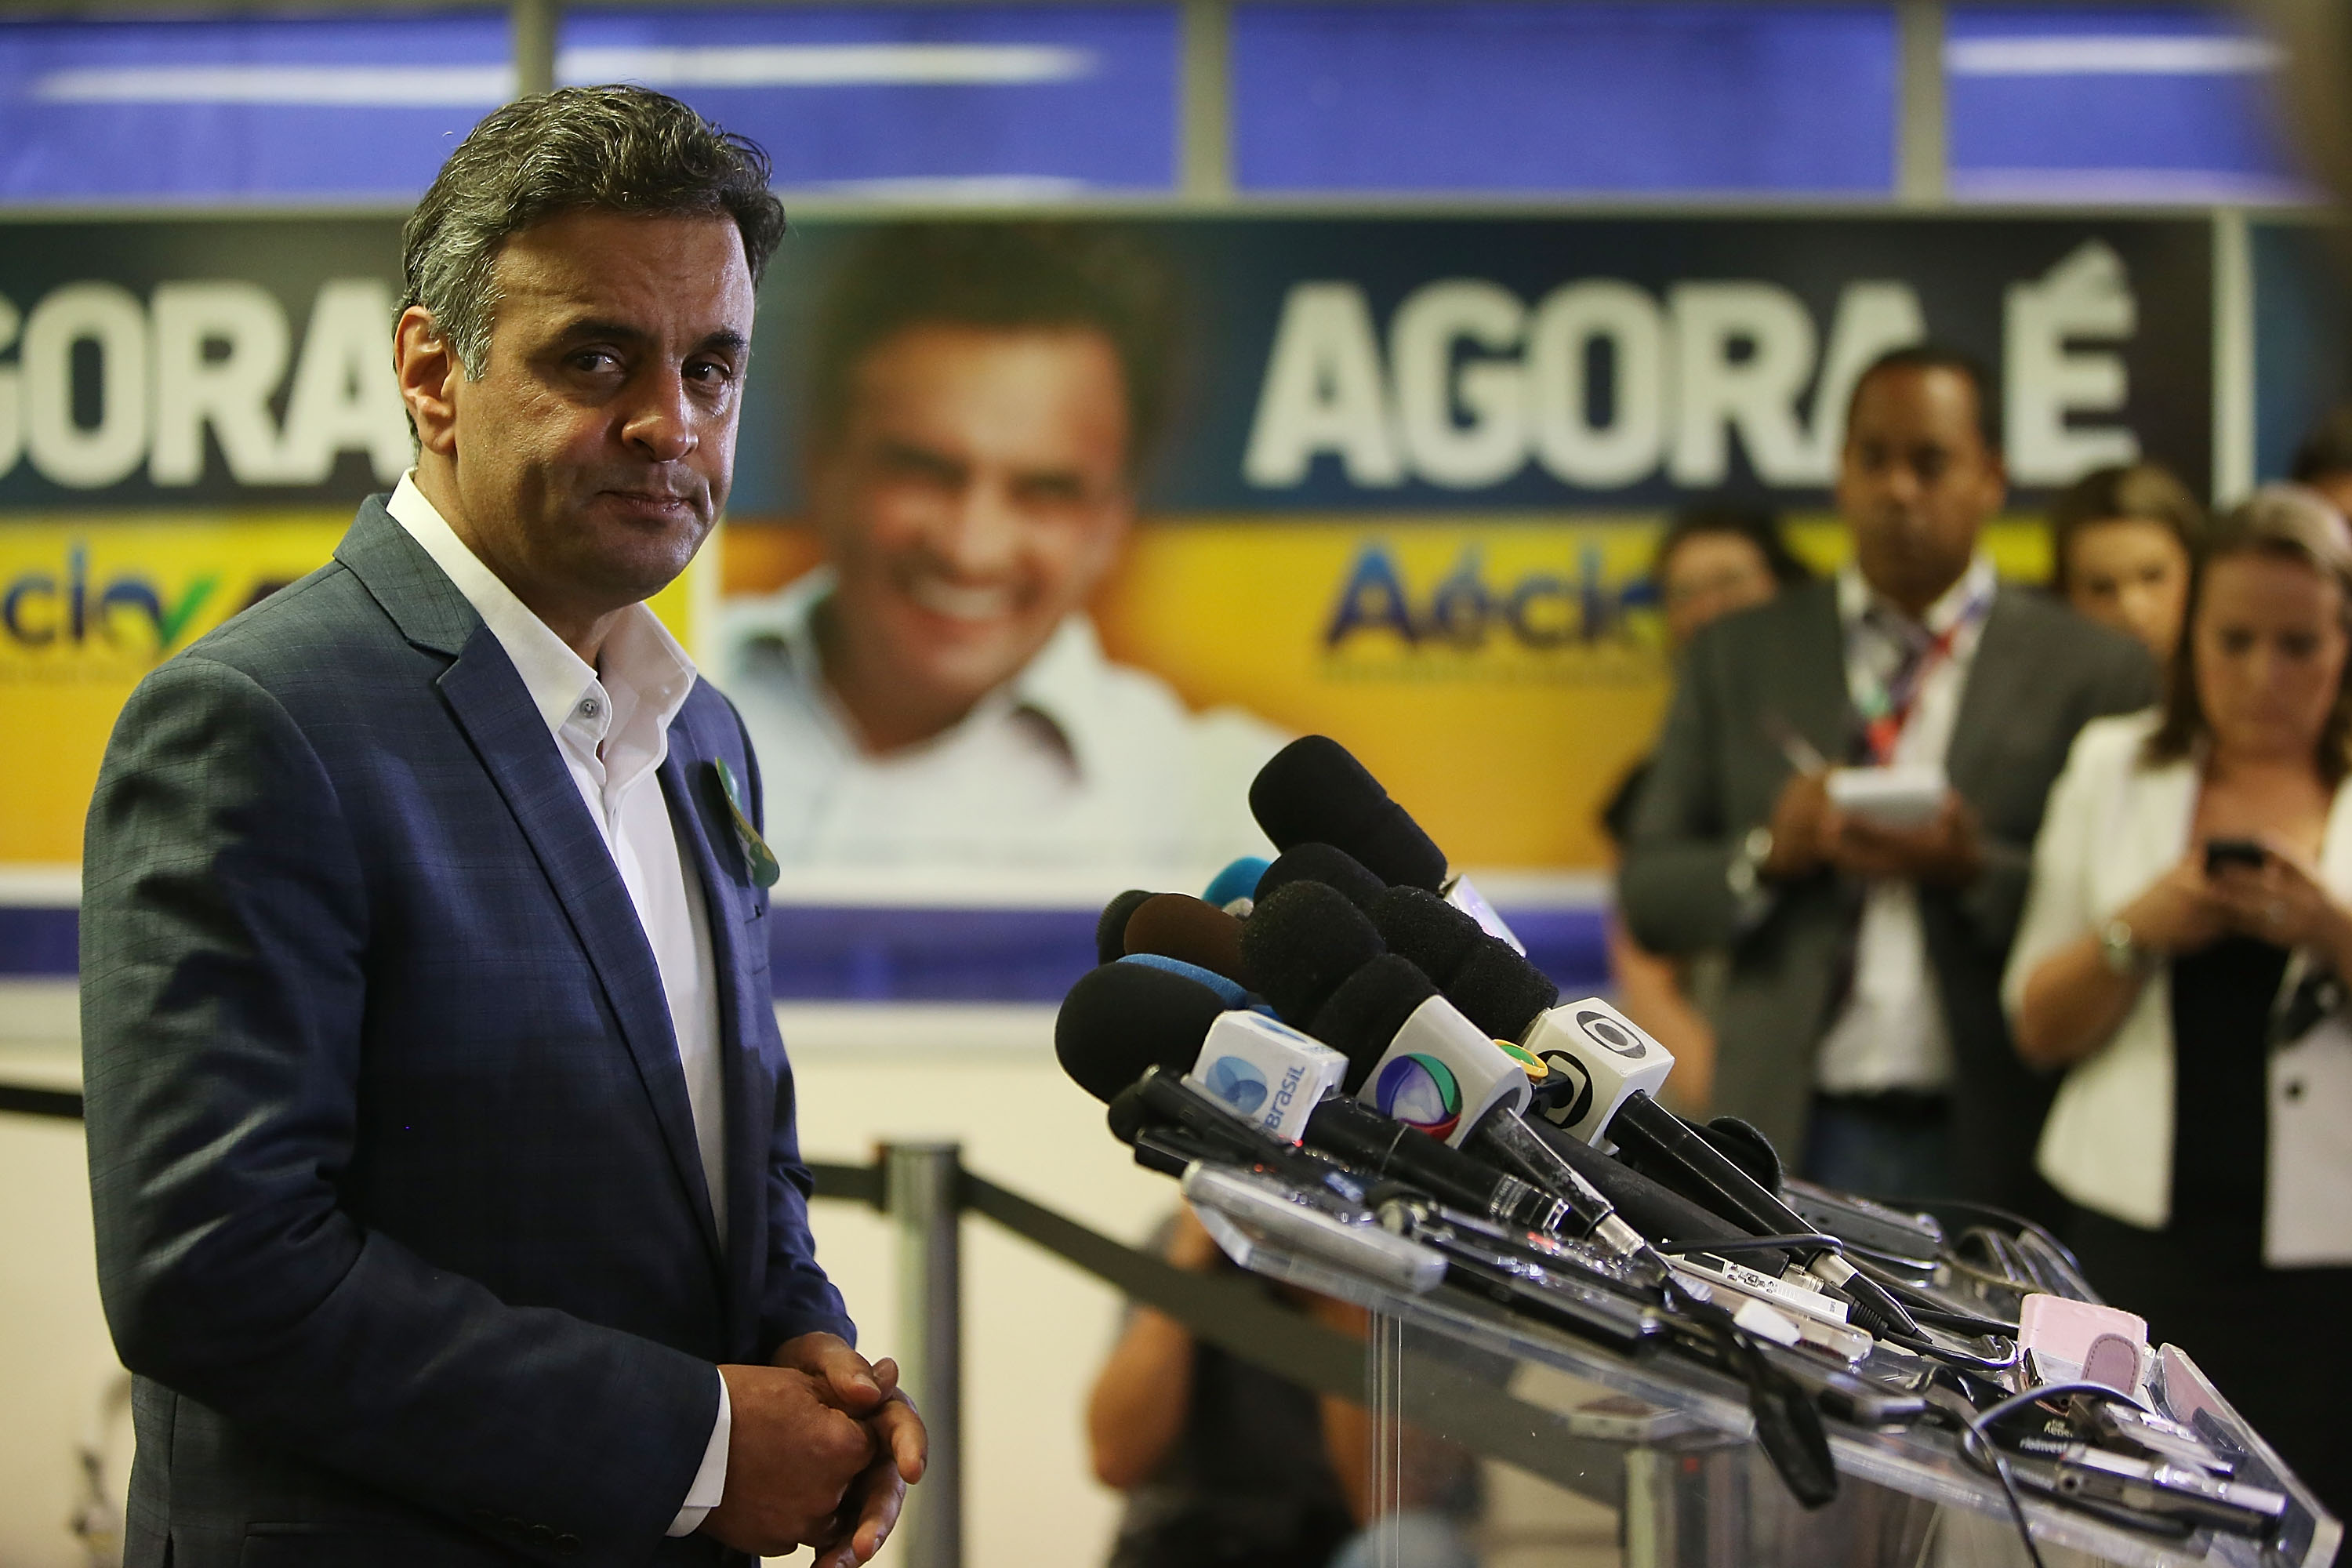 Presidential candidate of the Brazilian Social Democratic Party (PSDB) Aécio Neves listens to a question at a press conference on Oct. 23, 2014 in Rio de Janeiro